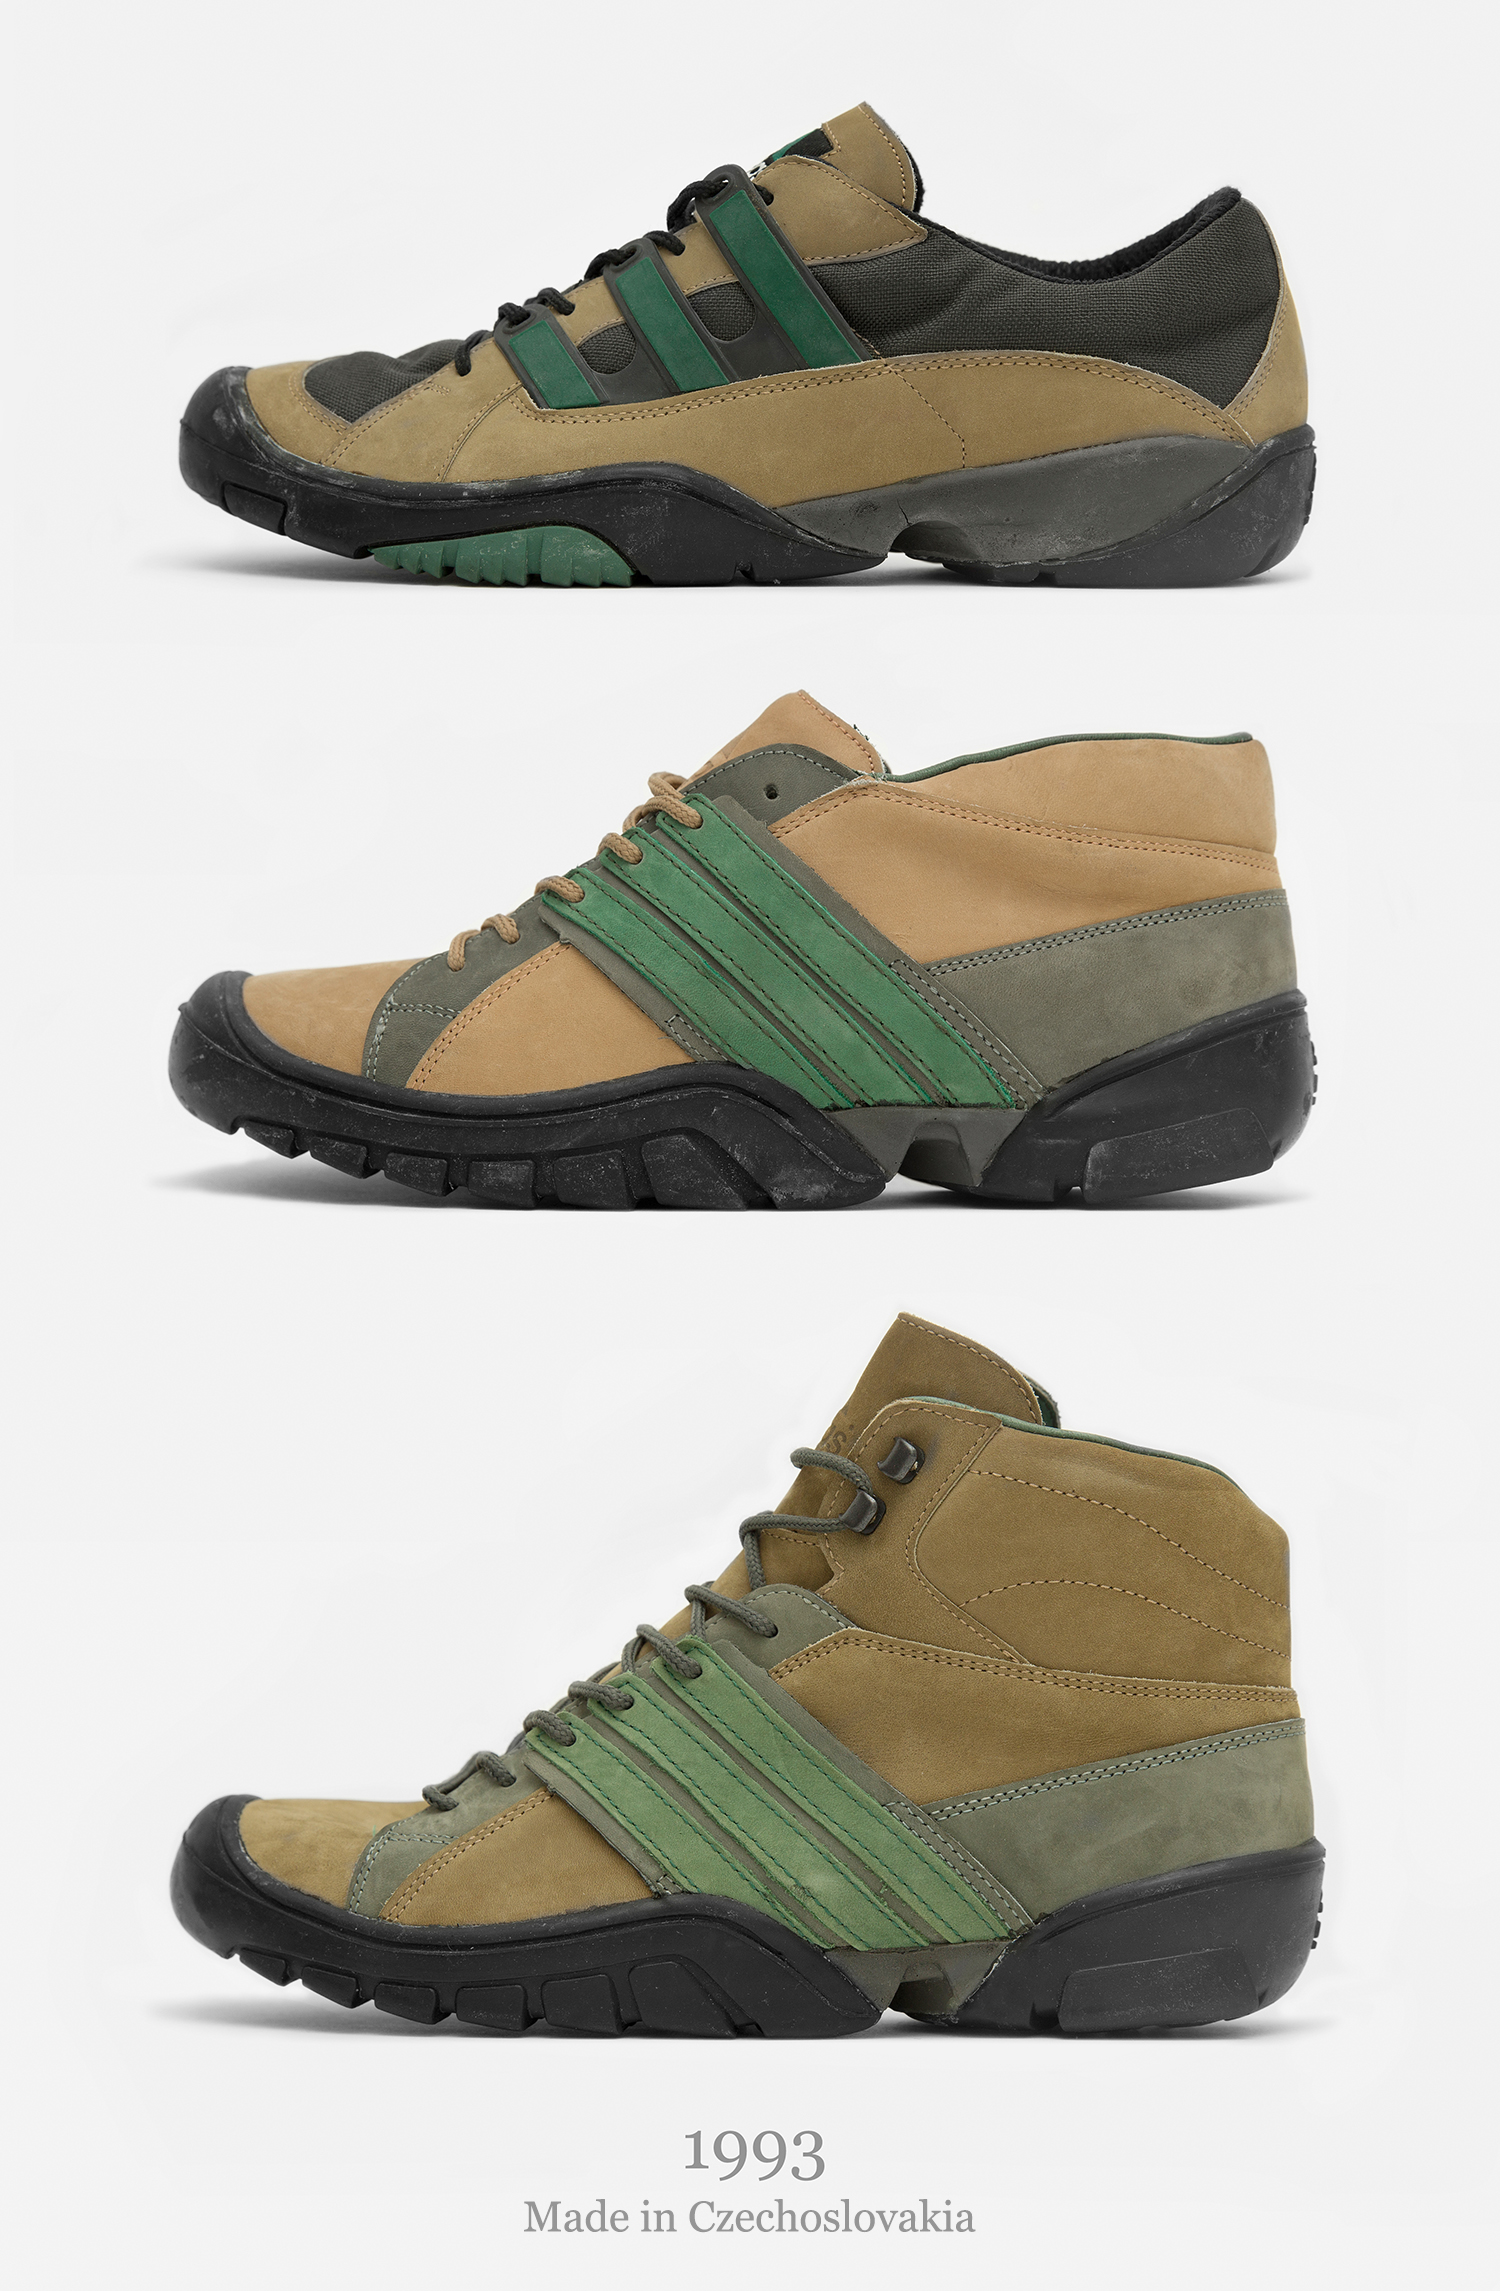 adidas_EQT_Equipment_Lock_up_size_hq_exclusive-7_adventure